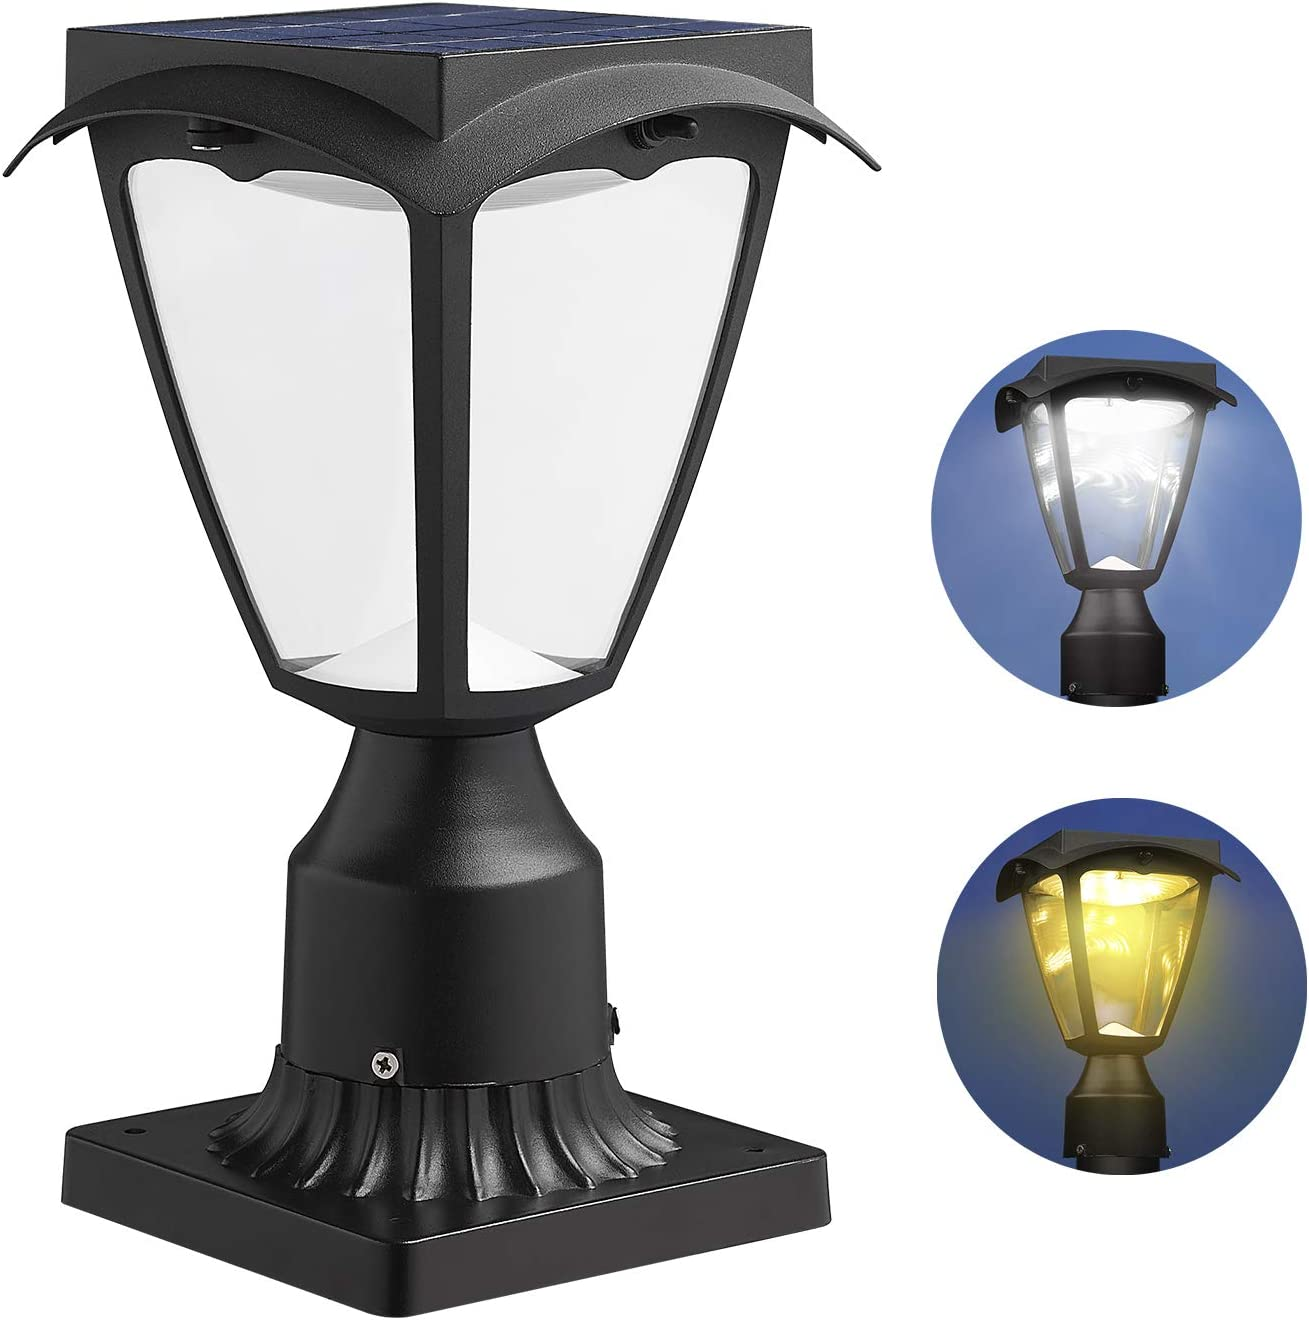 Solar Post Light Fixtures, Two Lighting Modes Include Warm/White Light, and Pier Mount Base (Black)